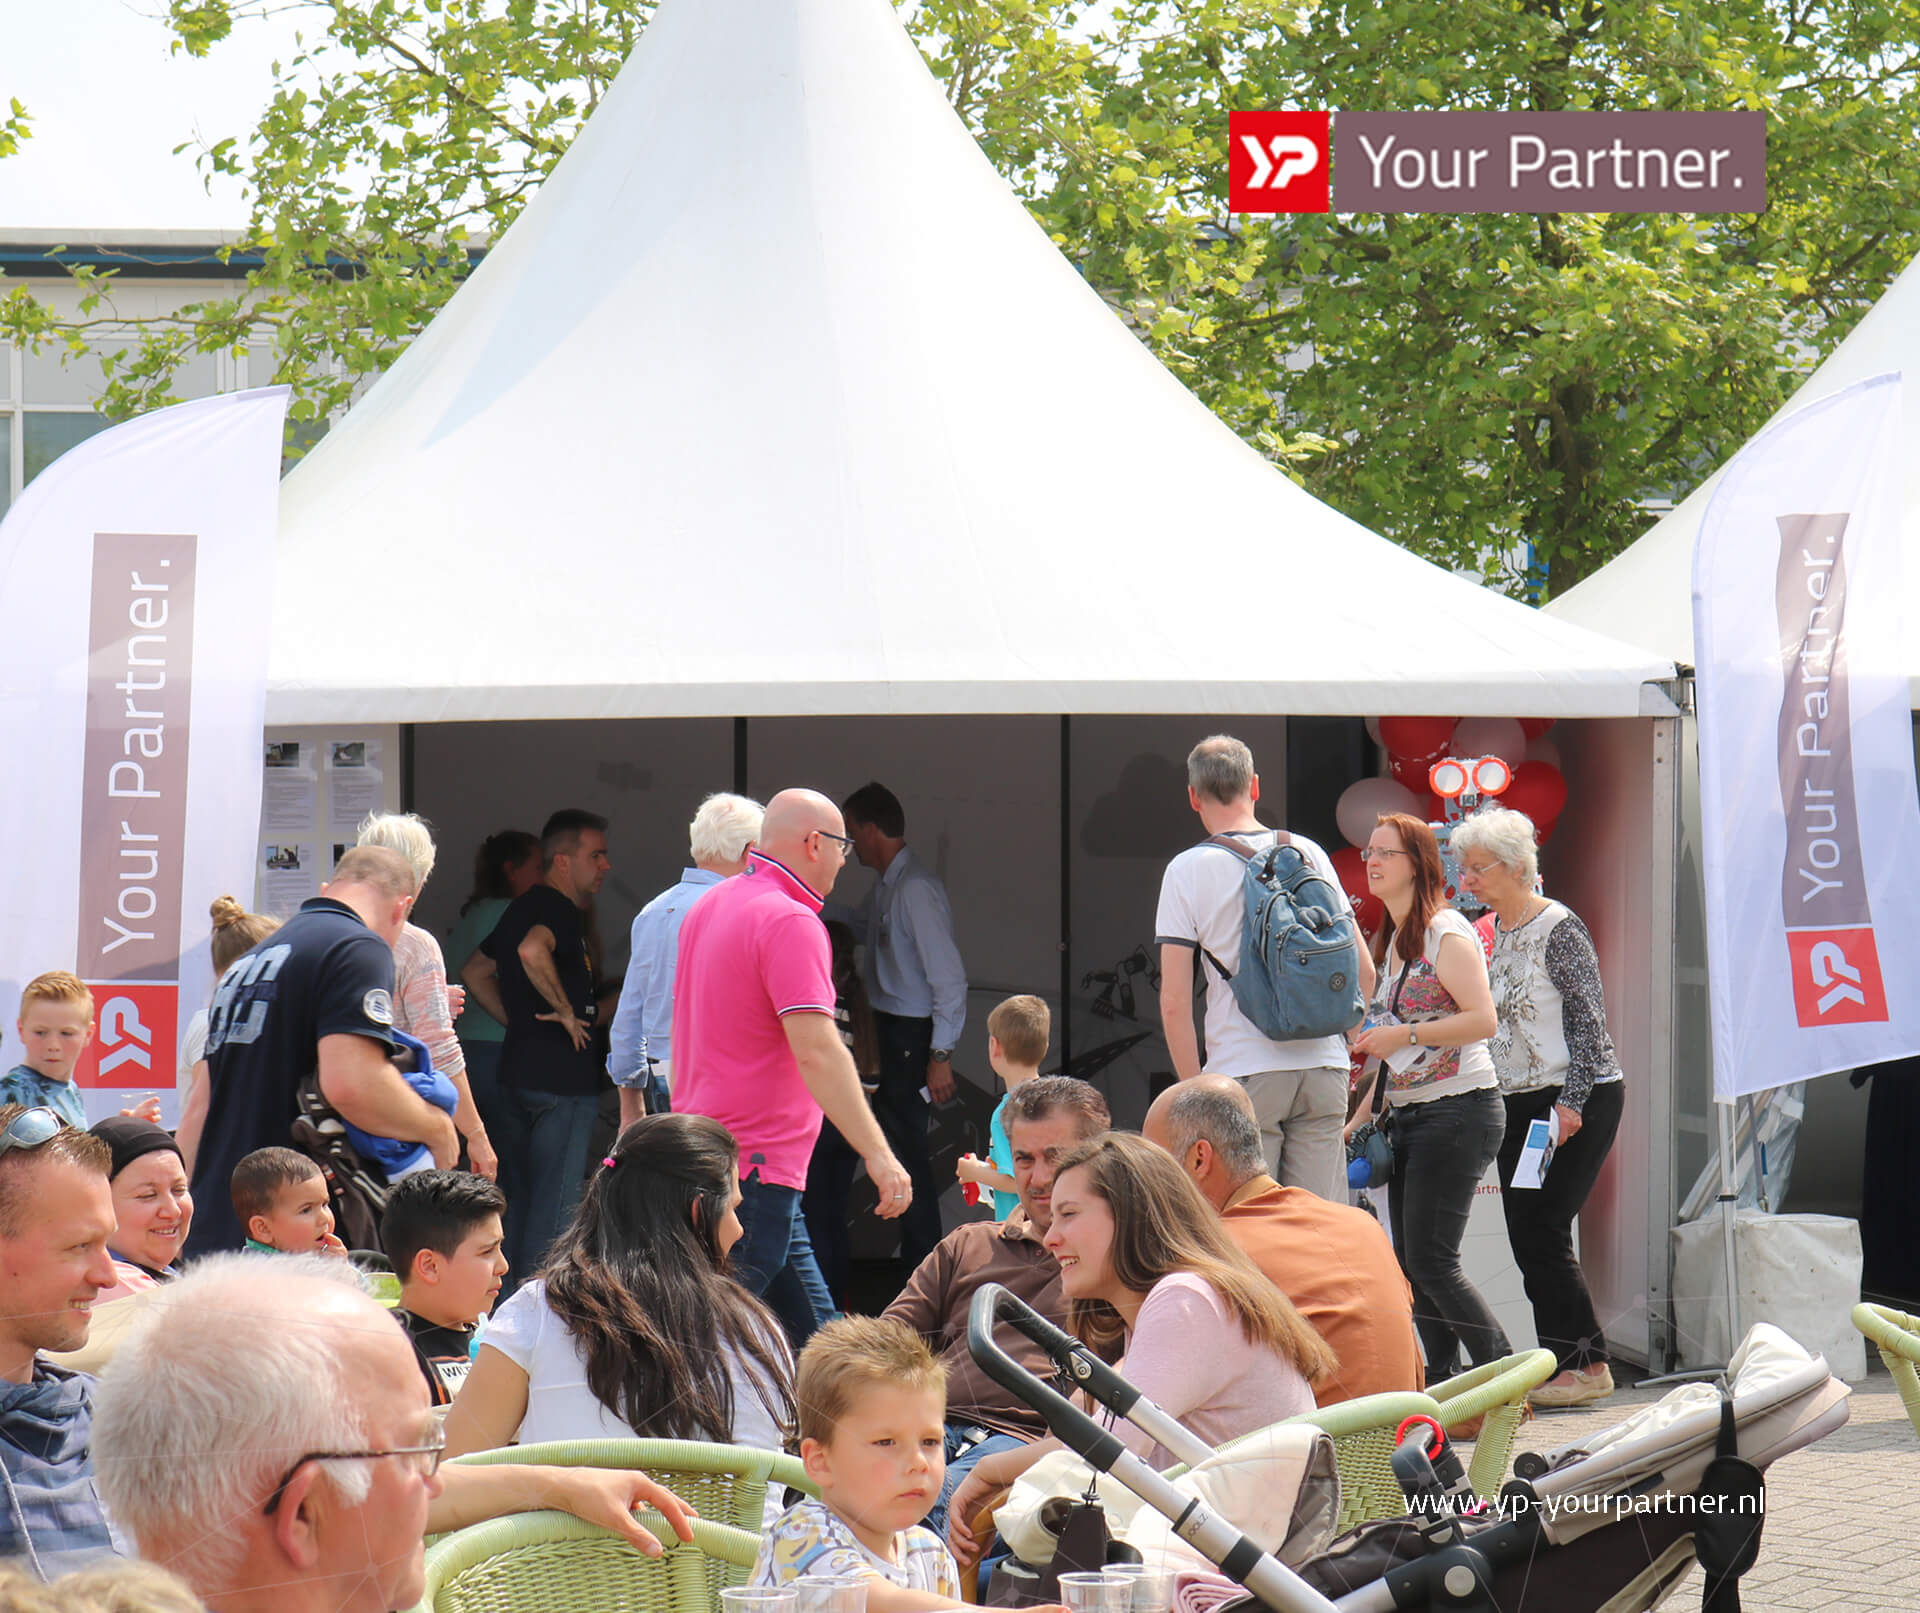 YP Your Partner - Dutch Technology Week 2018 - DTW - Innovatiecluster Drachten - Philips-terrein